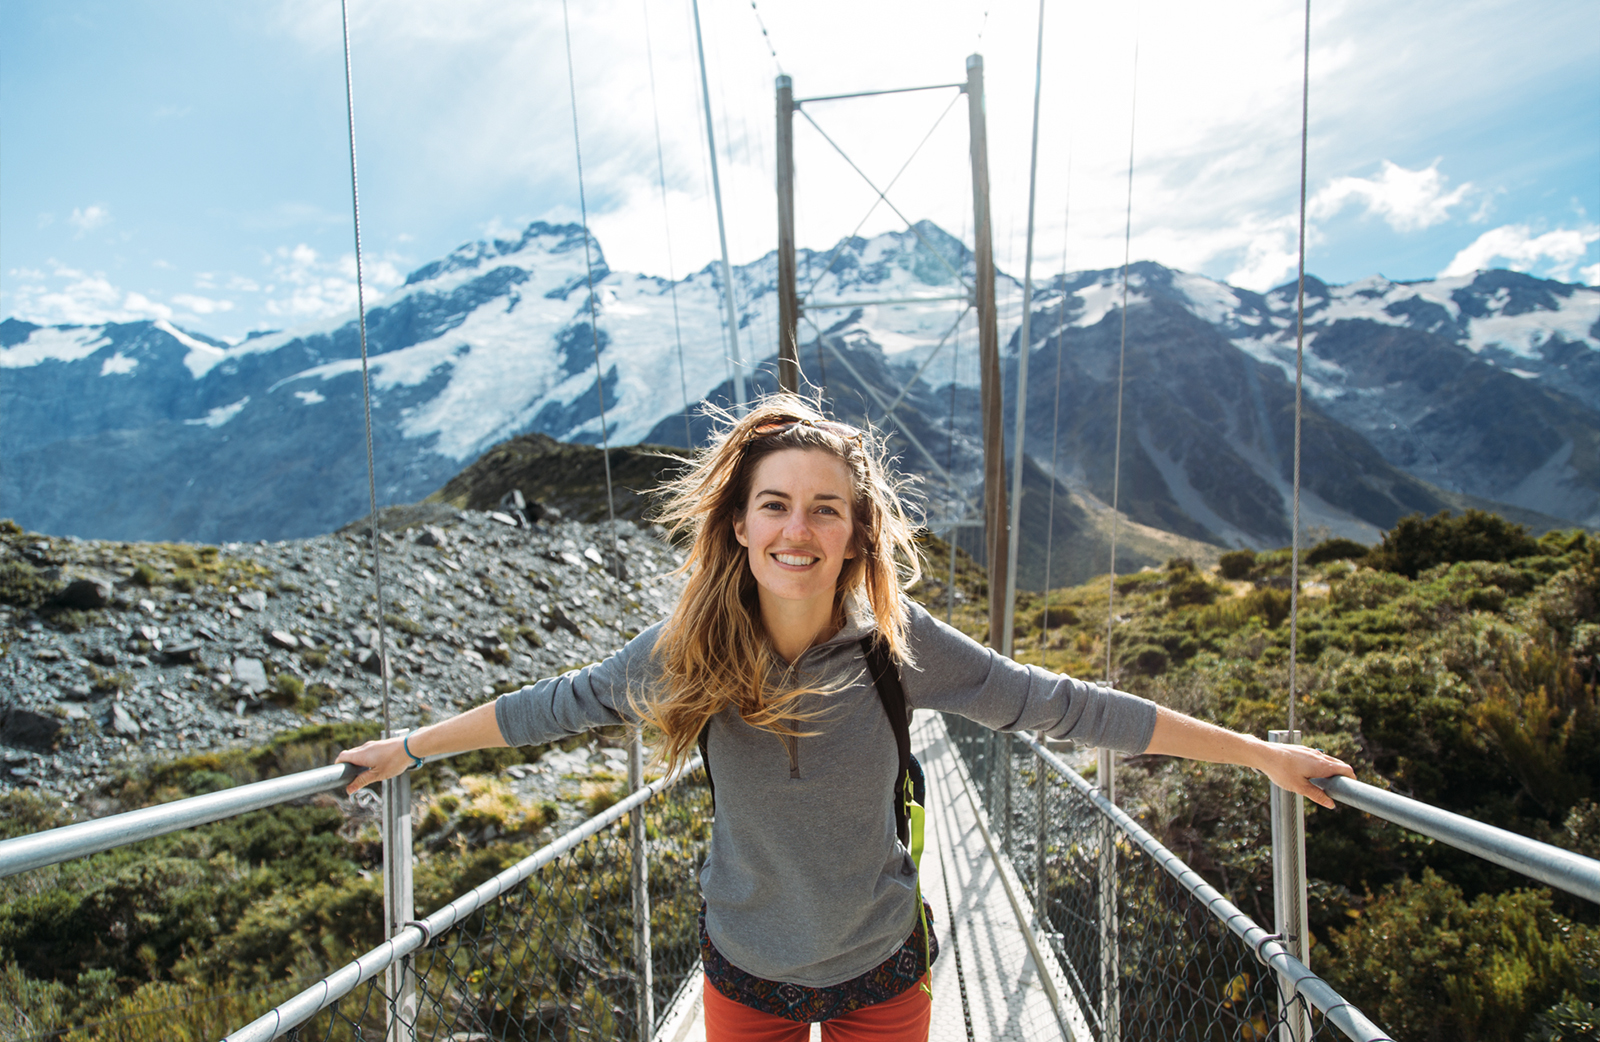 Locum tenens in New Zealand: Must-knows before taking a locums assignment among the Kiwis